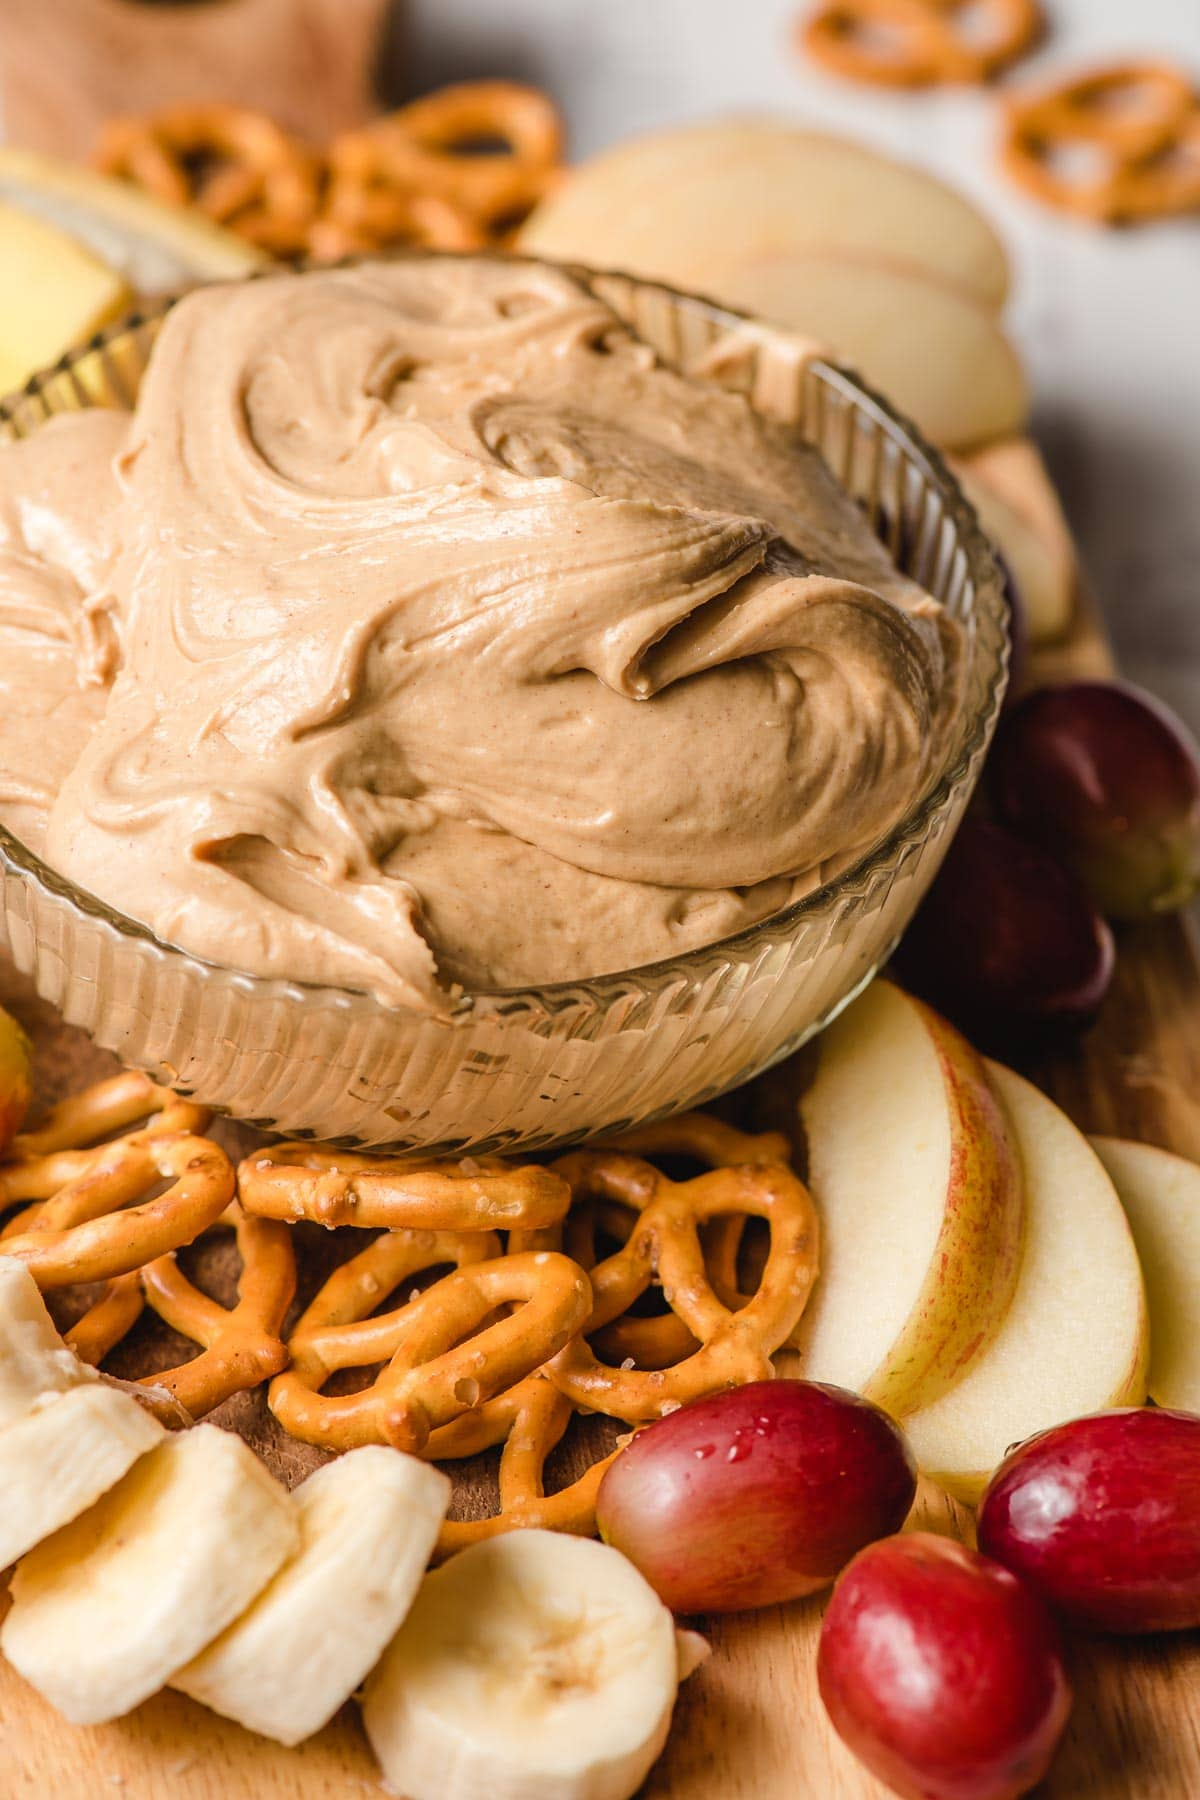 Amish church spread in a glass bowl surrounded by pretzels, apples, banana slices, and grapes.